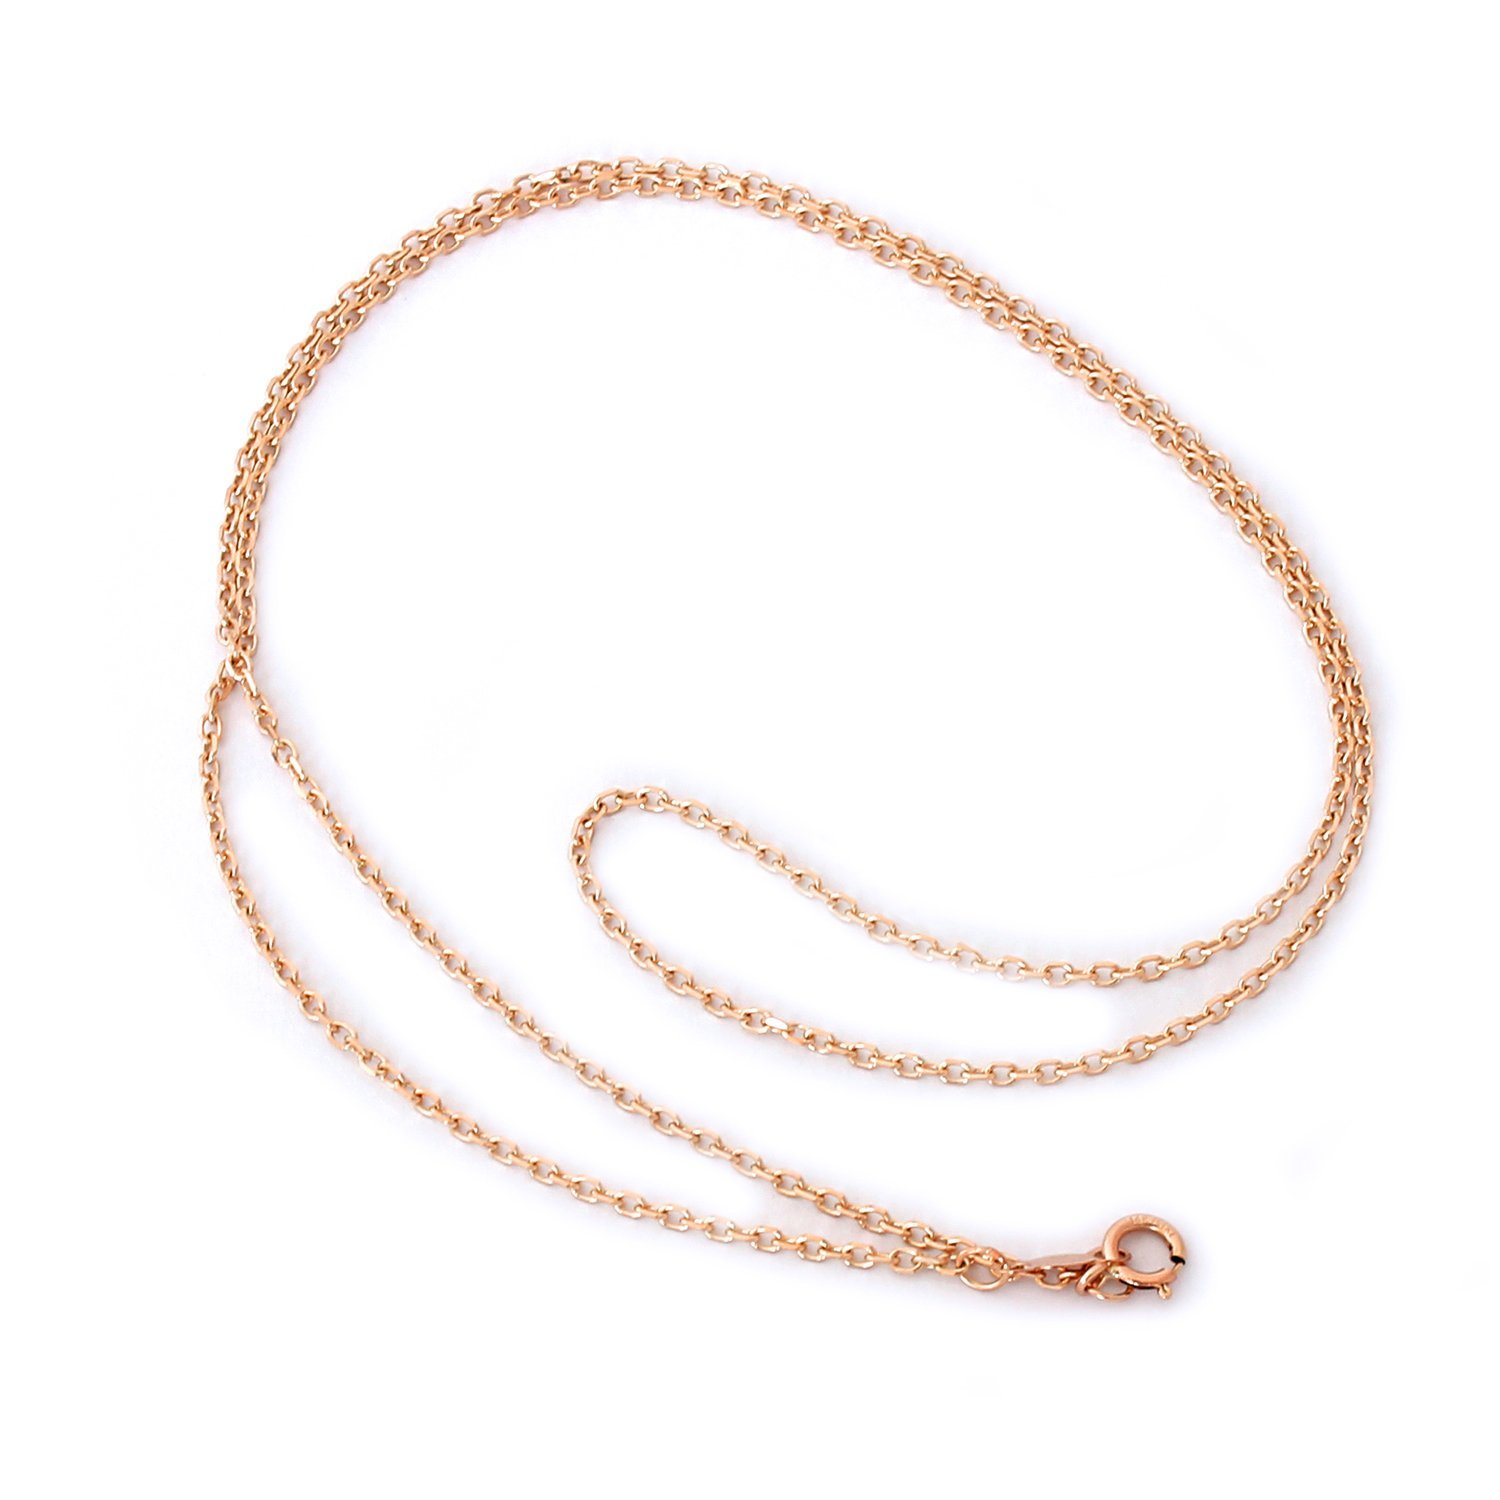 "14k Yellow, White or Rose Gold 1.6mm Round Rolo Cable Chain Necklace, 13"" 15"" 16"" 18"" 20"" 22"""